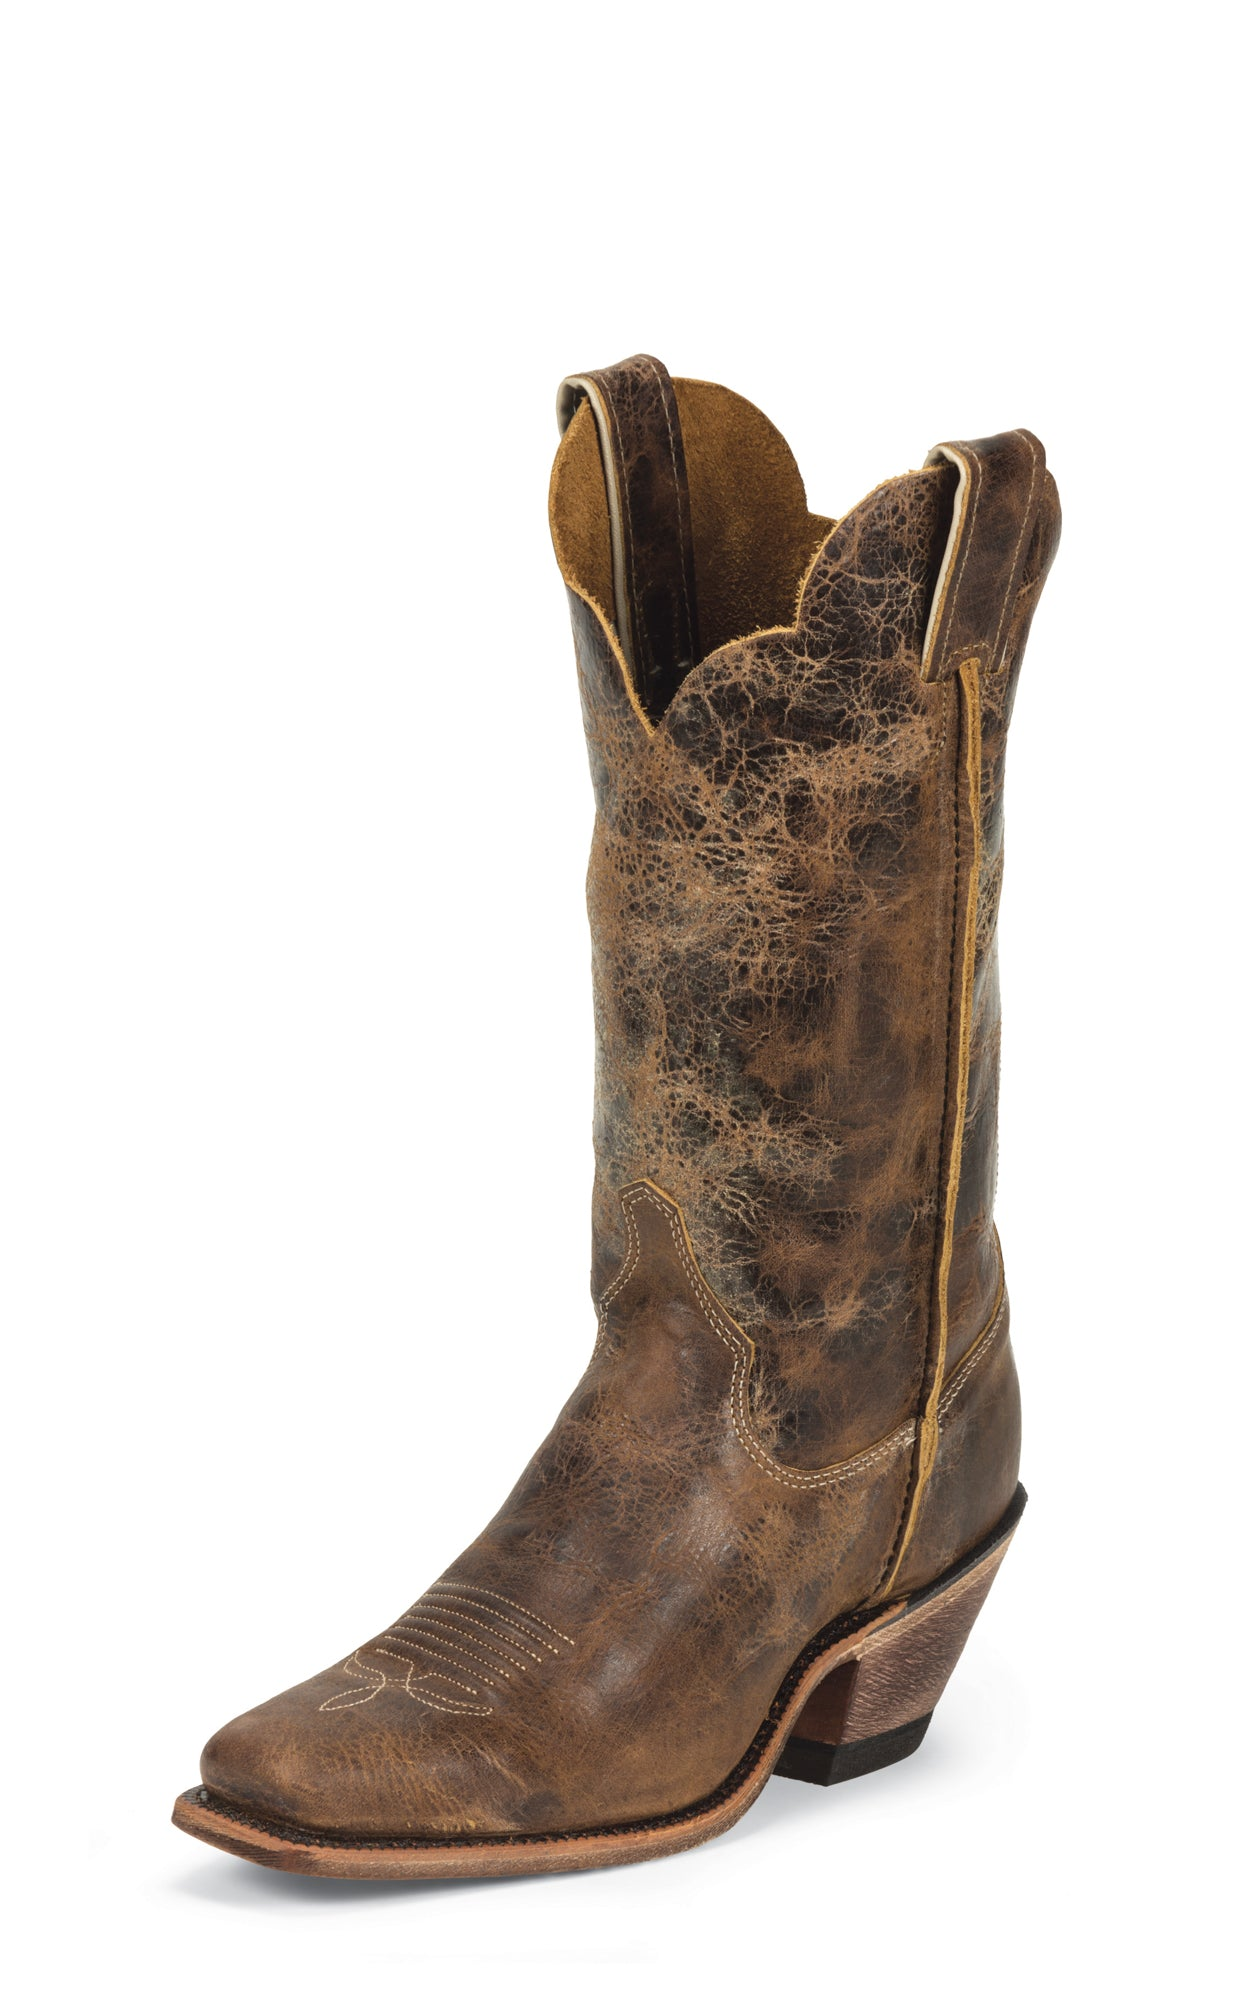 661b65cae40 Justin Womens Dark Brown Cracked Leather Western Boots 12in Bent Rail